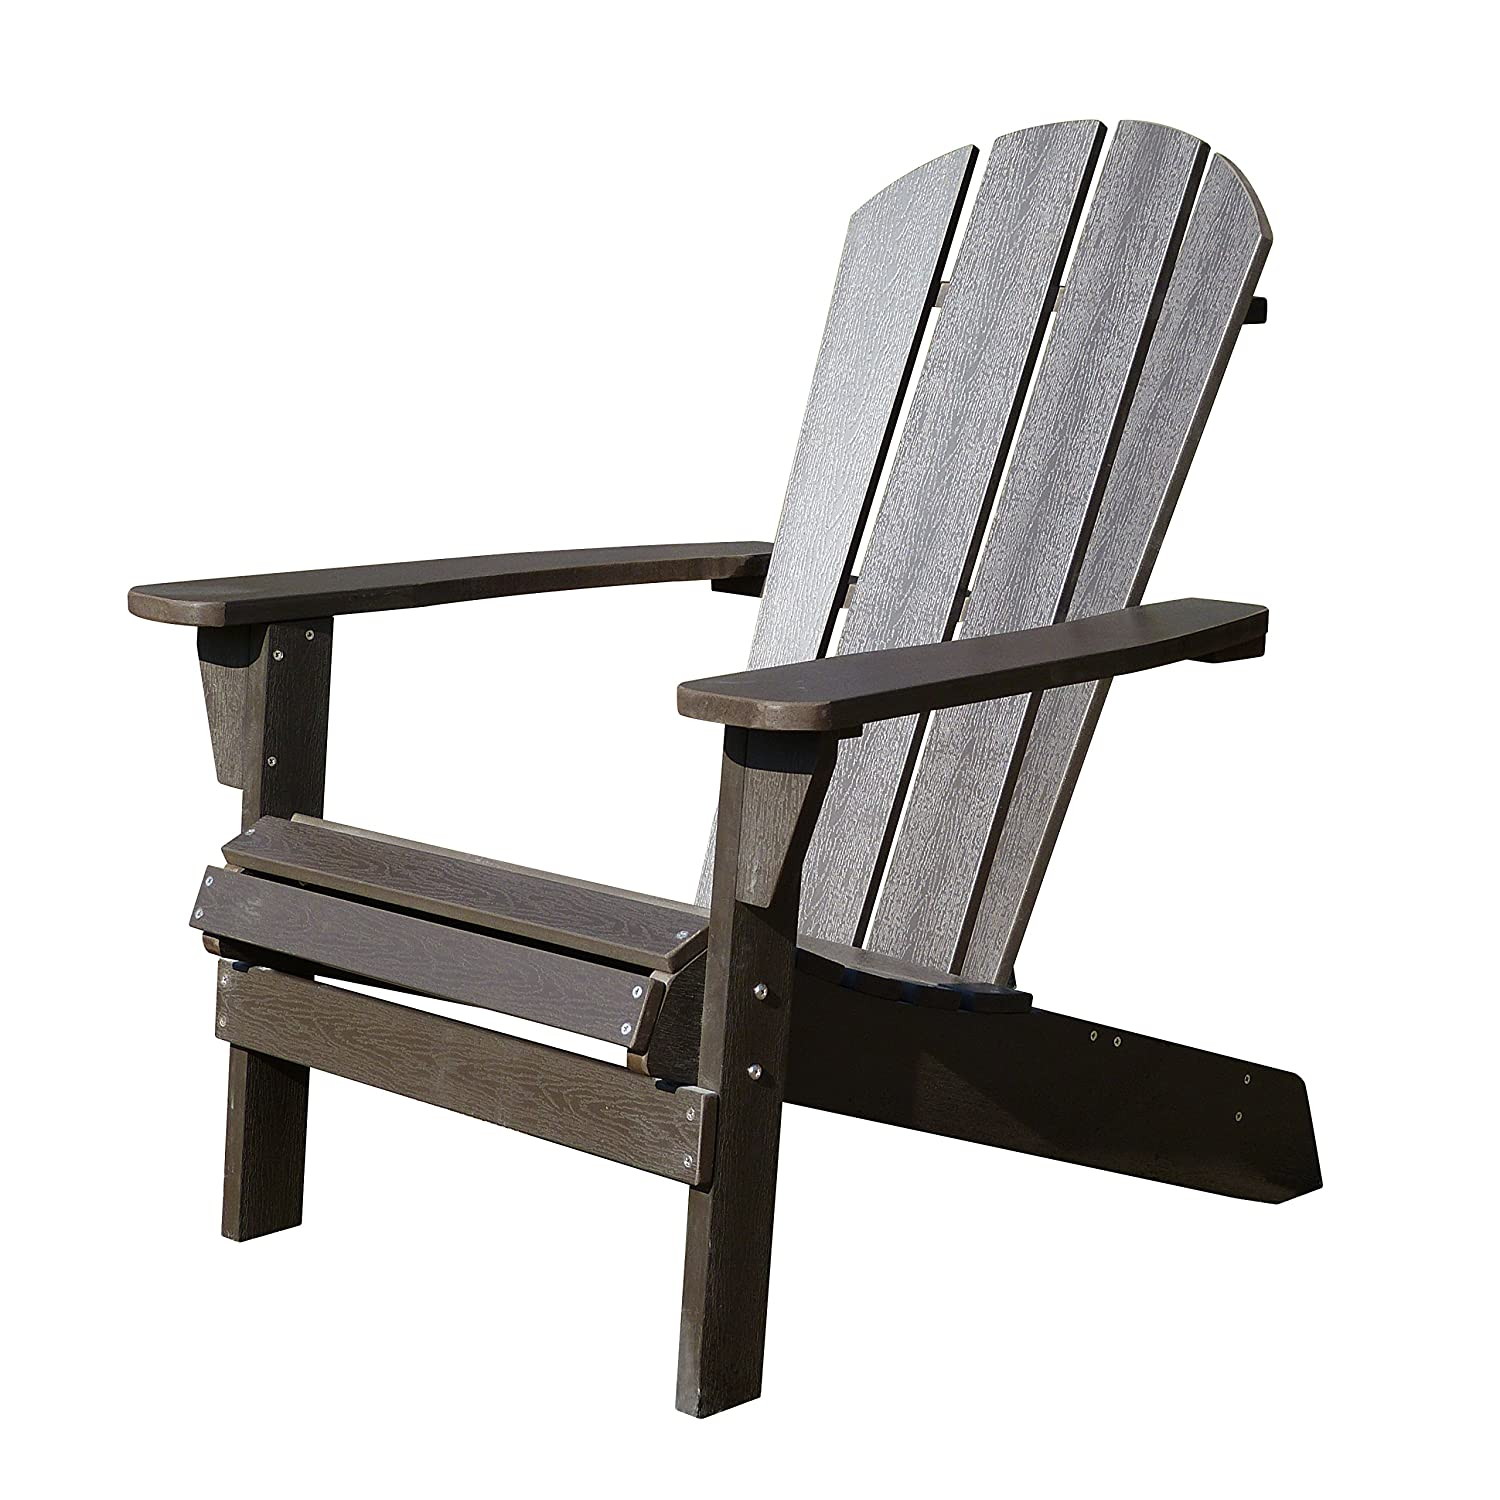 Top 10 Best Muskoka Chairs